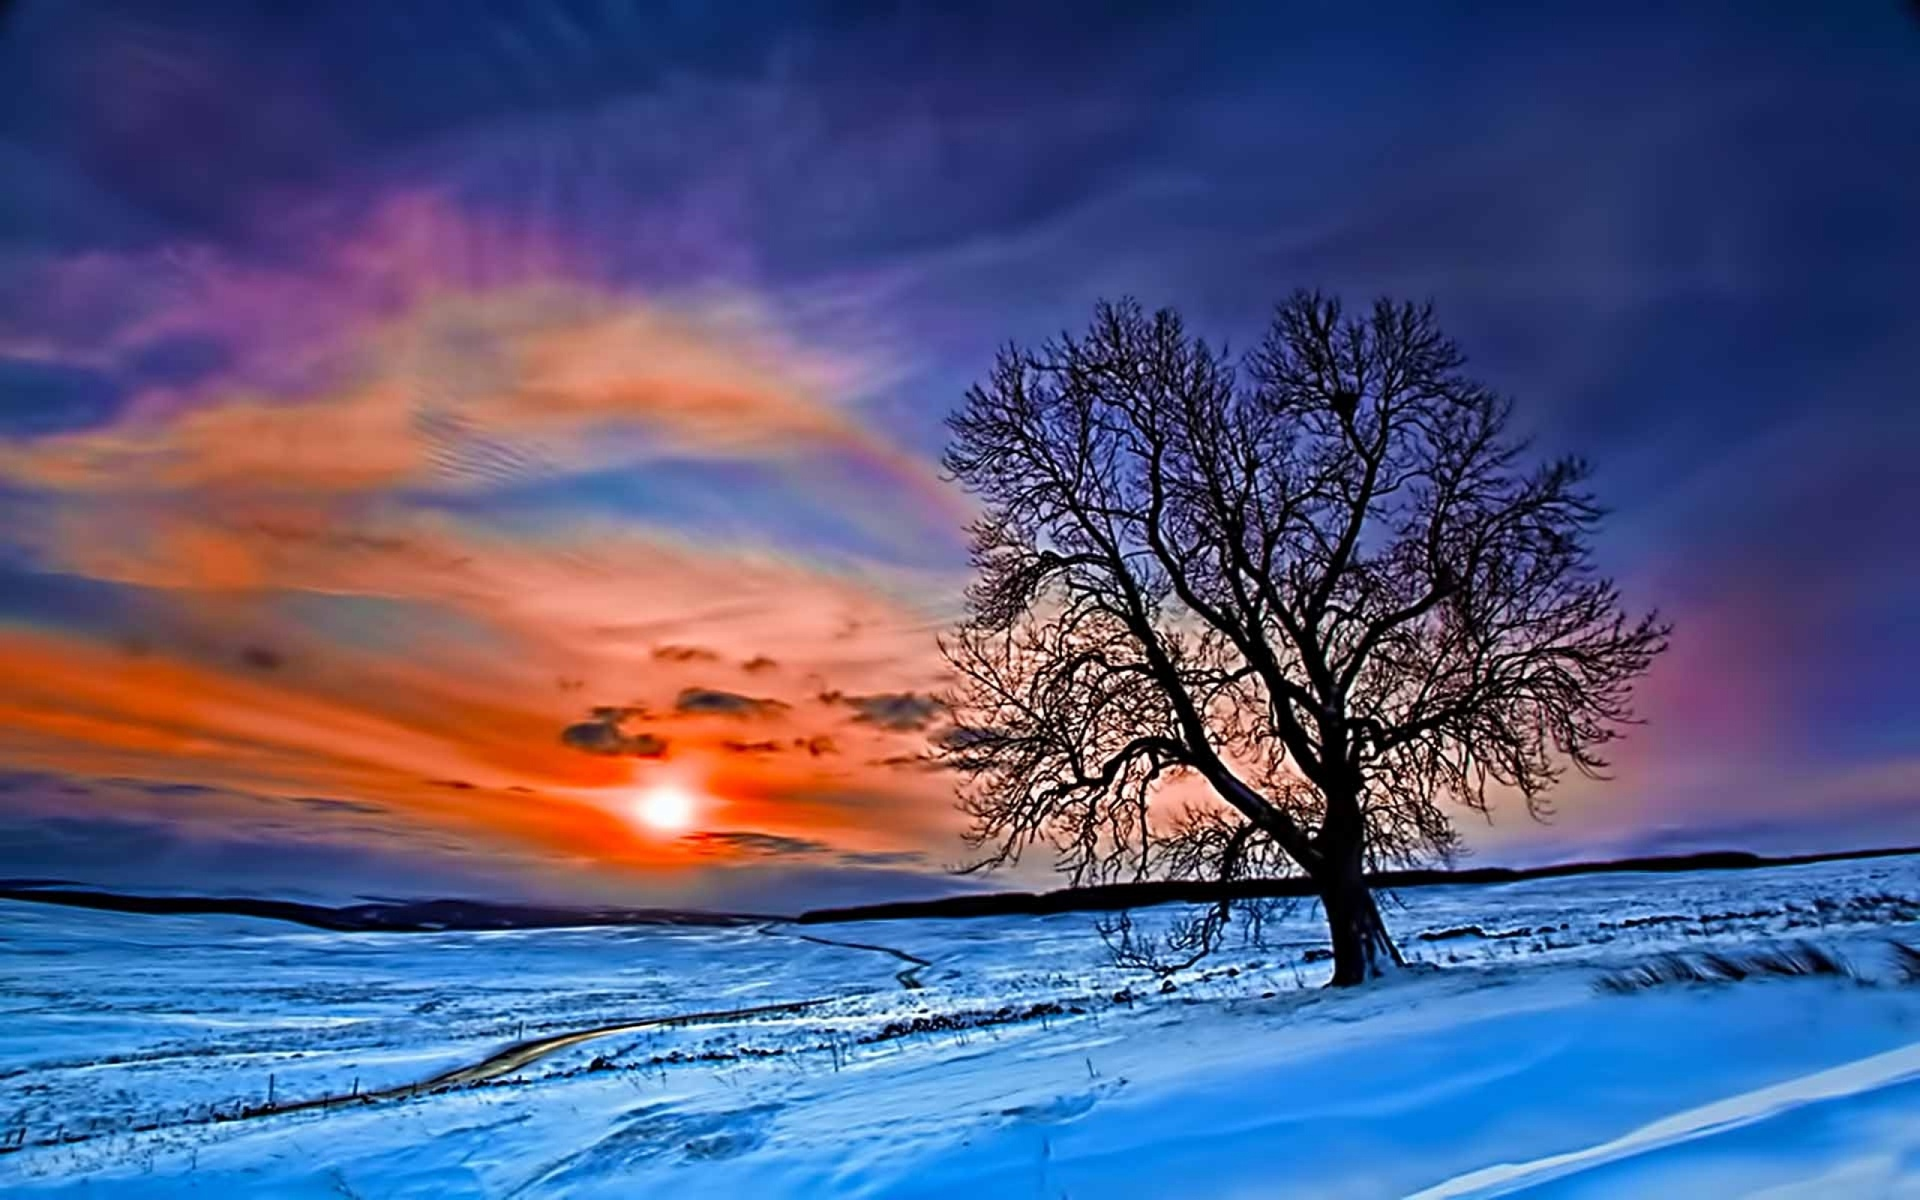 Winter Nature Wallpapers  HD Wallpapers